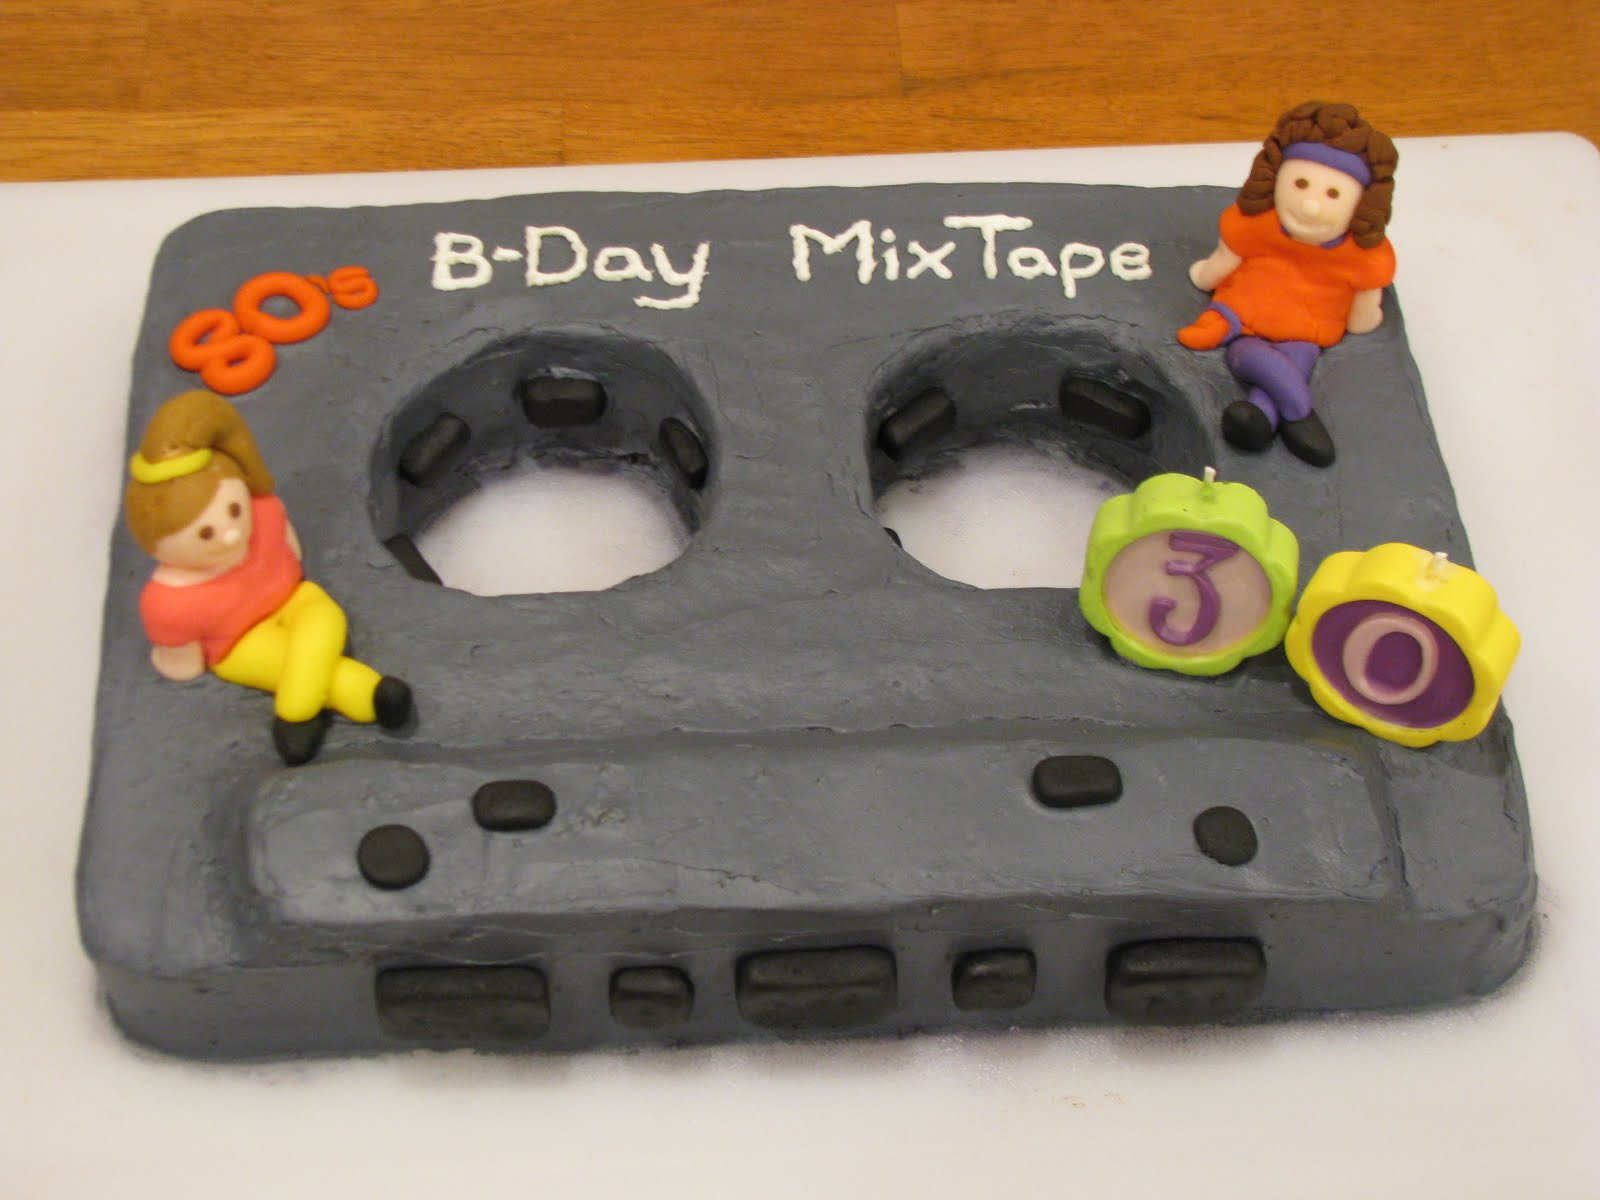 Since Then Ive Found Many More 80s Themed Birthday Cake Creations That Are Definitely Worth Sharing